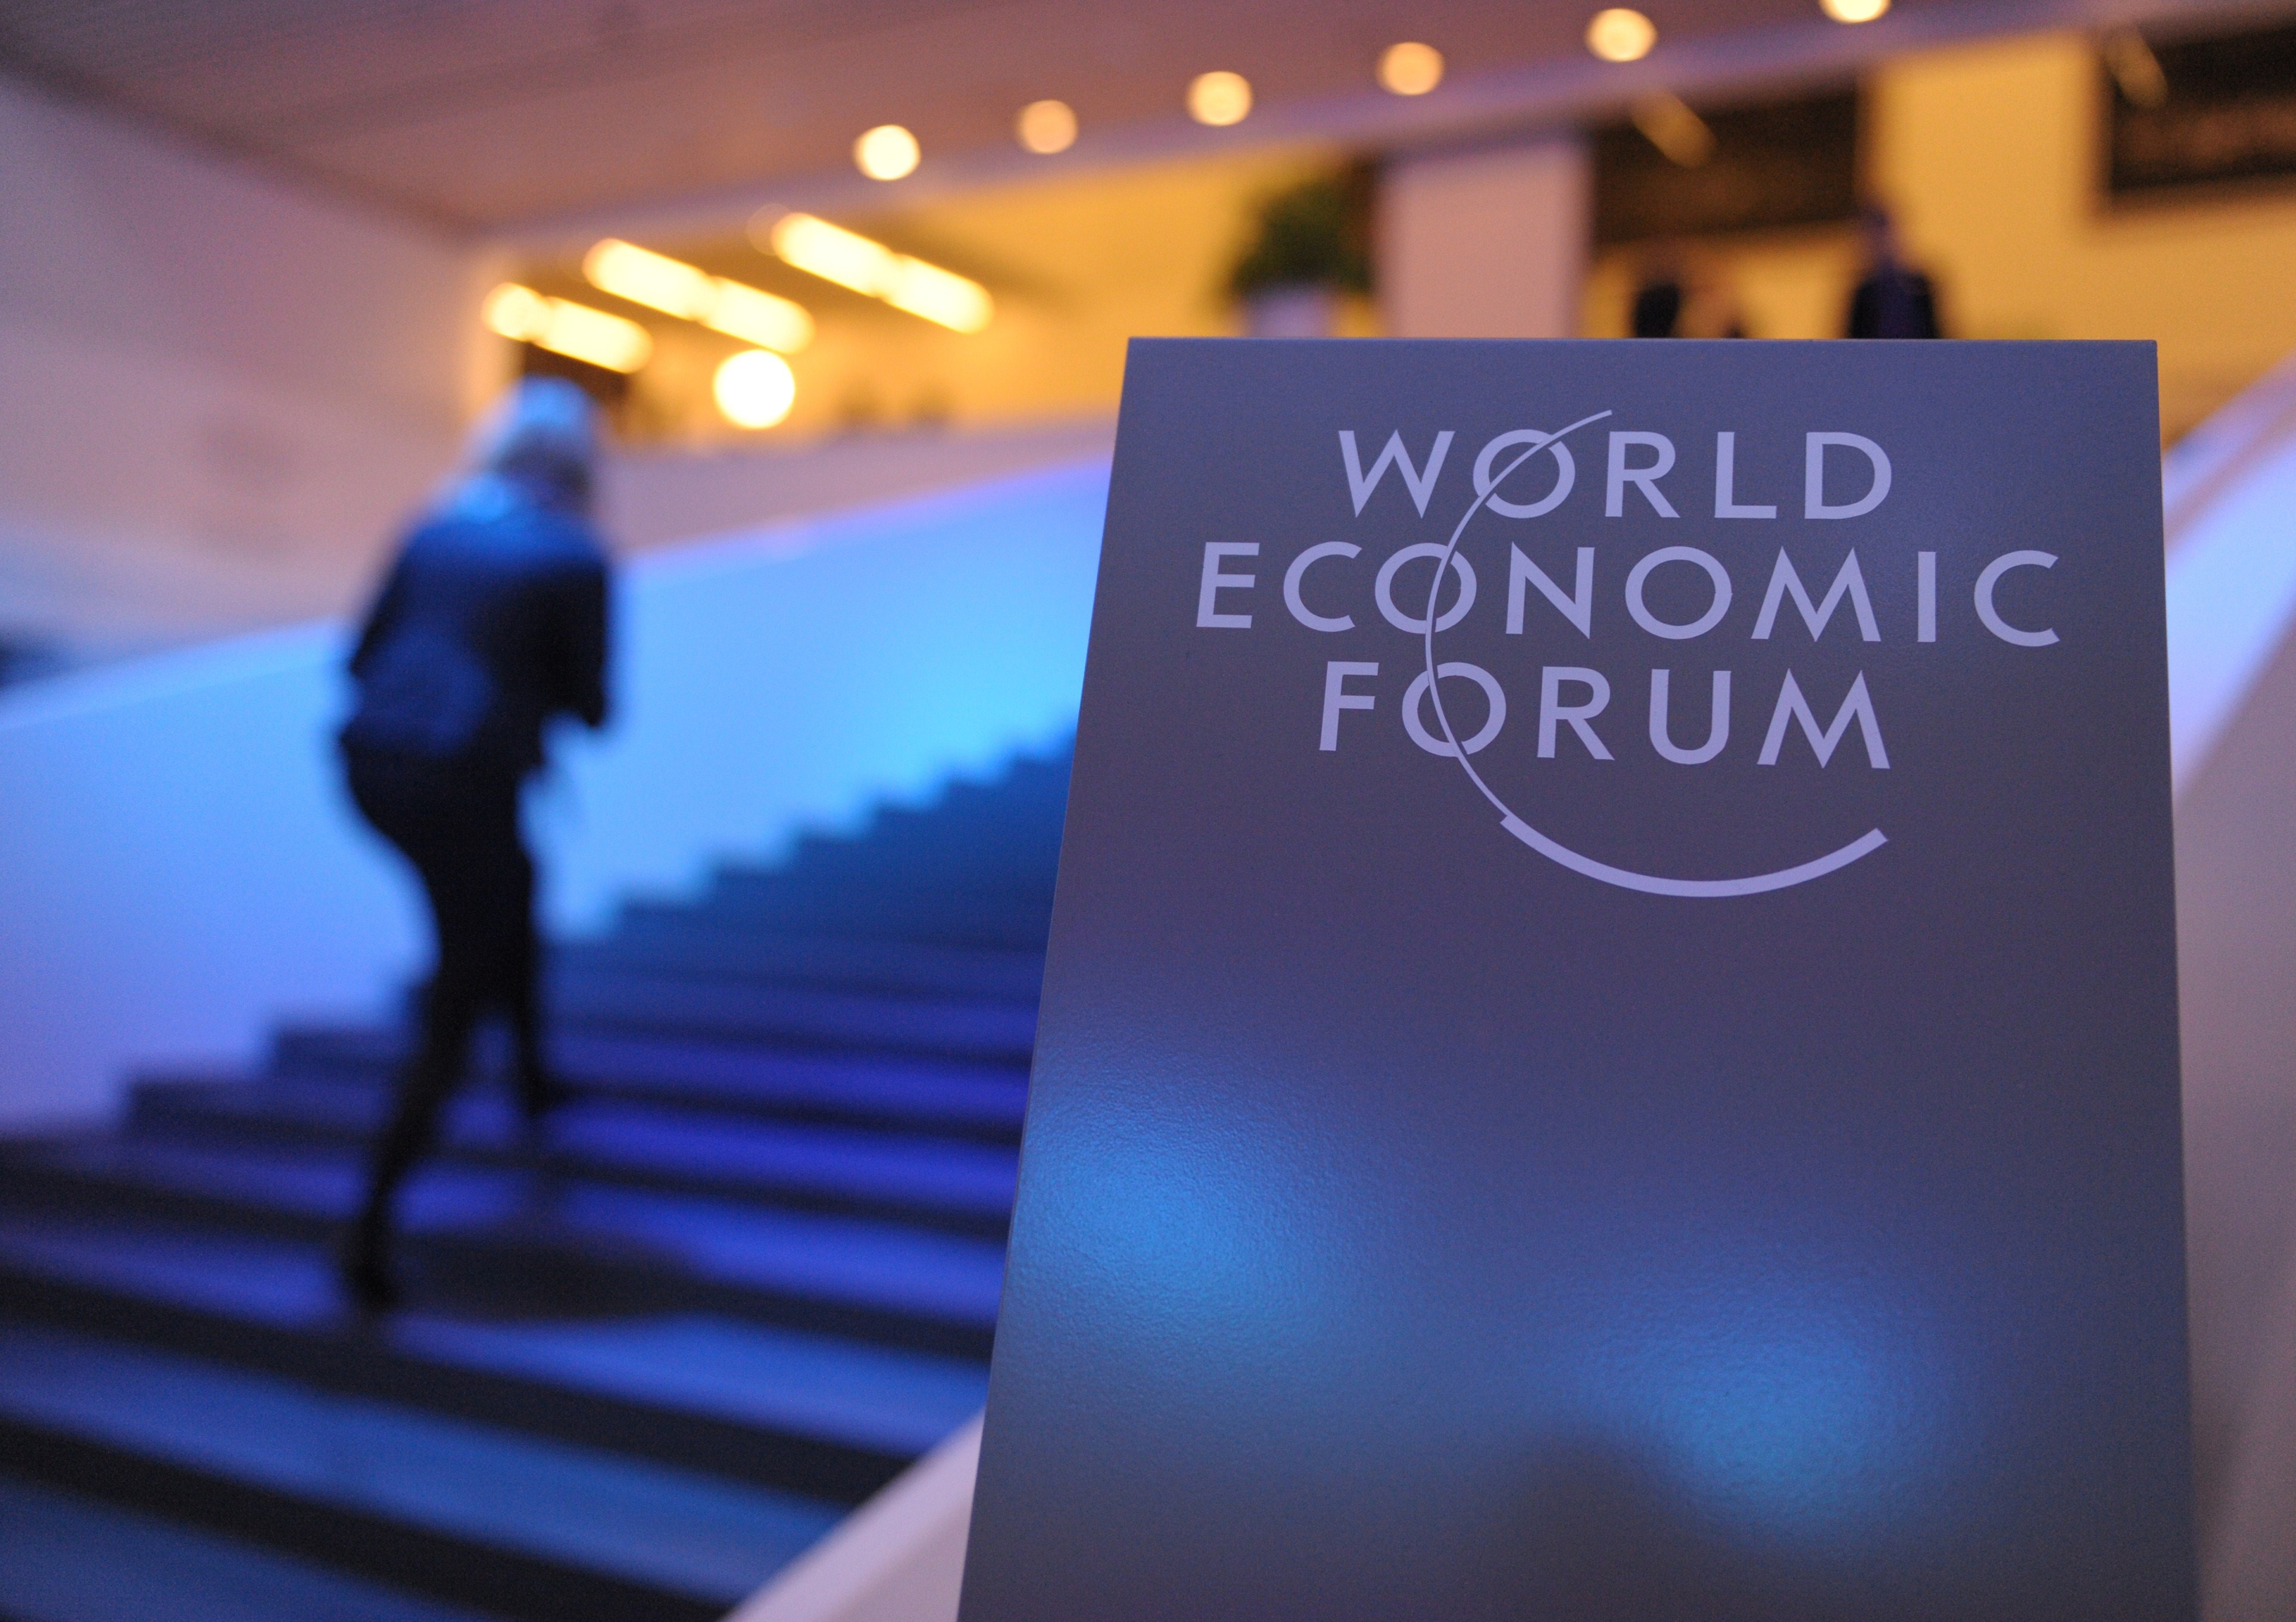 Participants arrive at the congress centrre prior to the opening of the World Economic Forum in Davos on January 21, 2014.